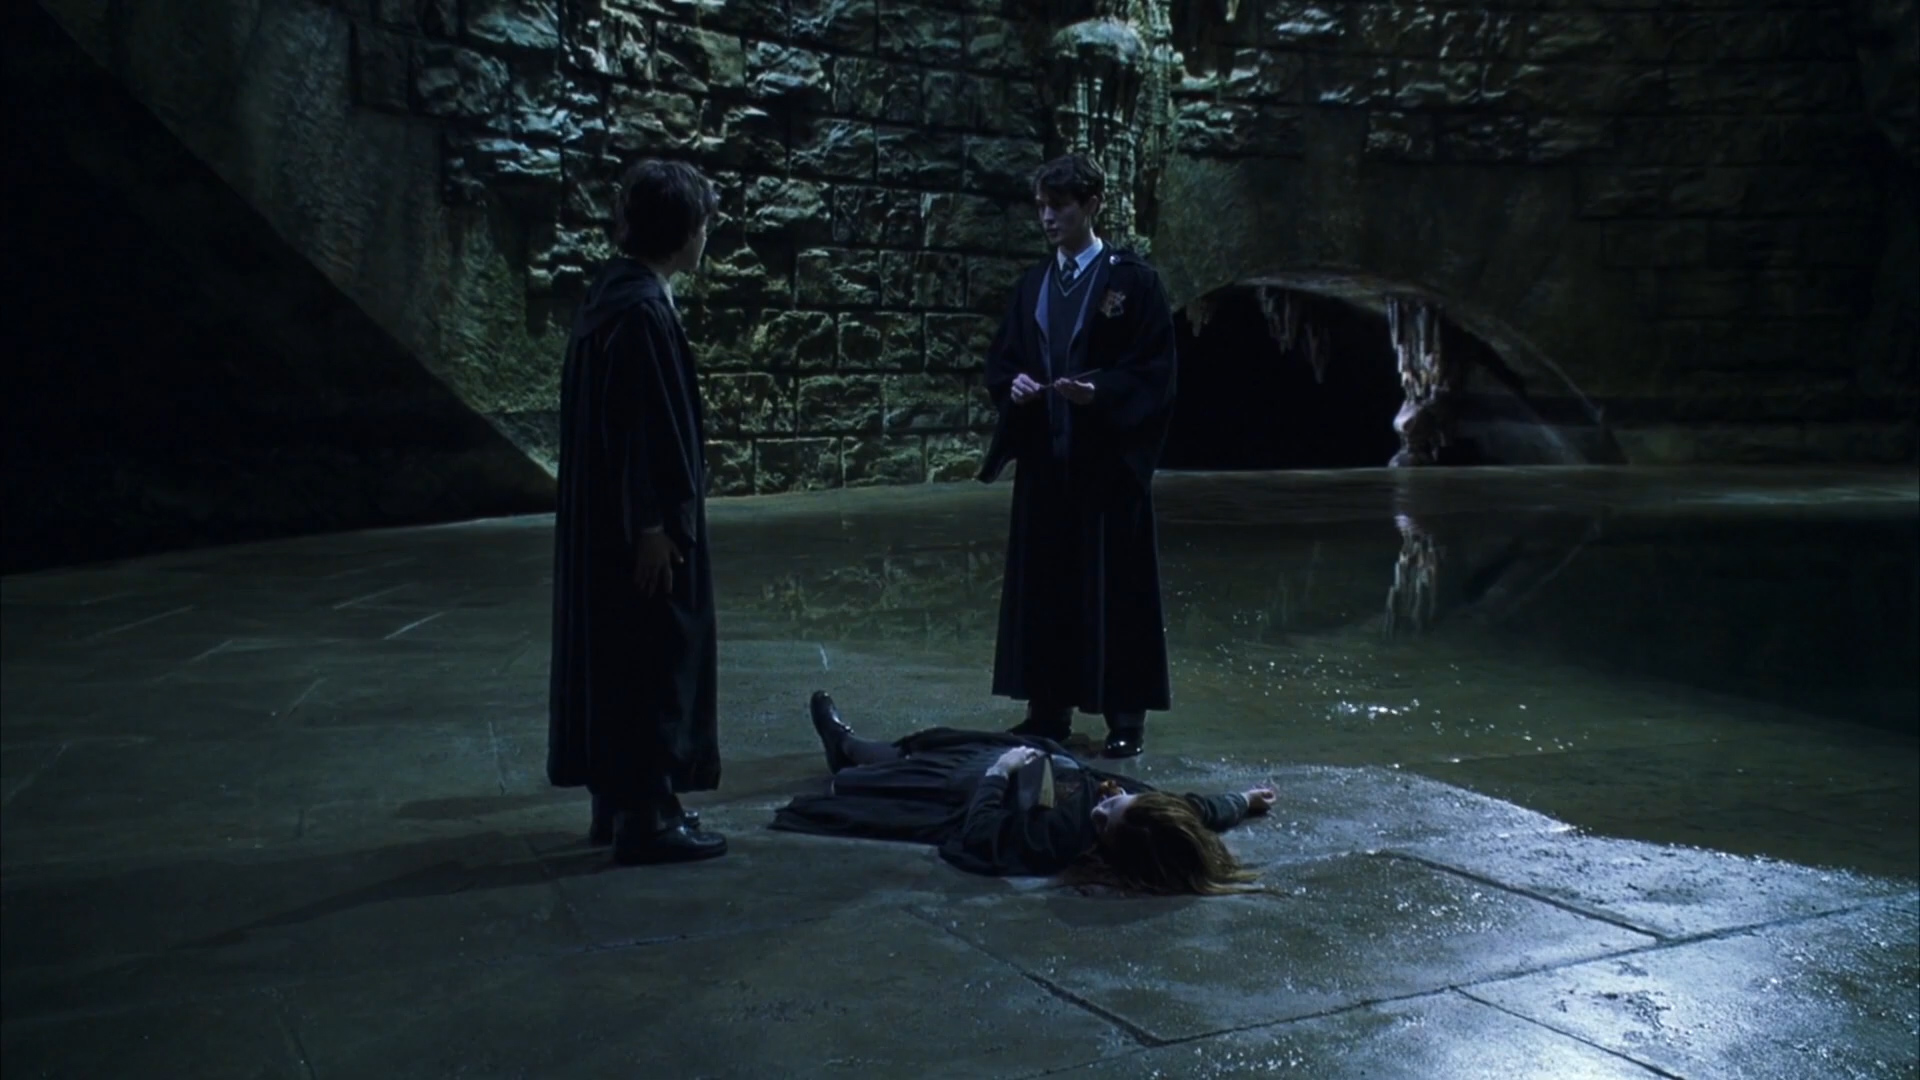 [1] Harry Potter and the Chamber of Secrets - Harry Meets Tom Riddle